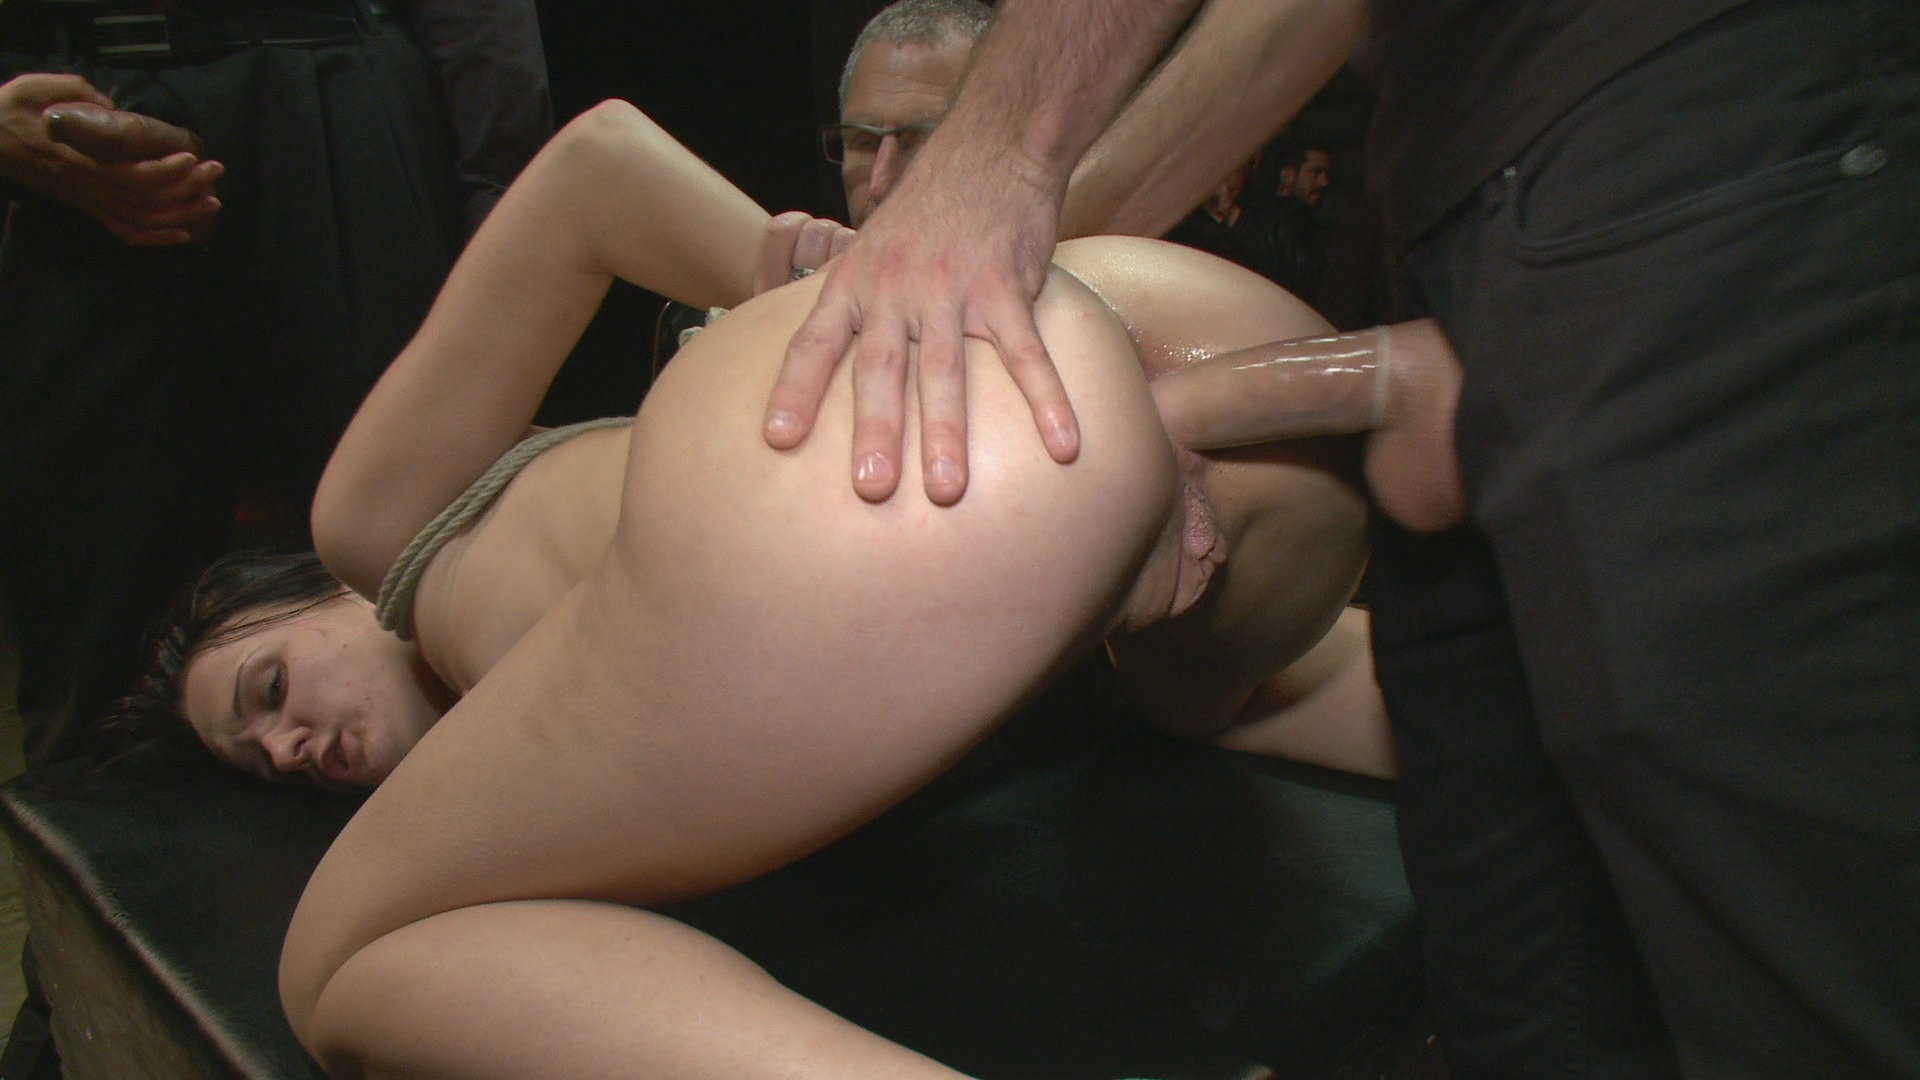 Public Disgrace: Reality Check / The pain is real, the audience is real, the hands of strangers fondling and fingering you is real, the orgasms are real, everything about it is real! This reality check was a bit much for Bobbi to handle, but she did her best and took it like a champ!